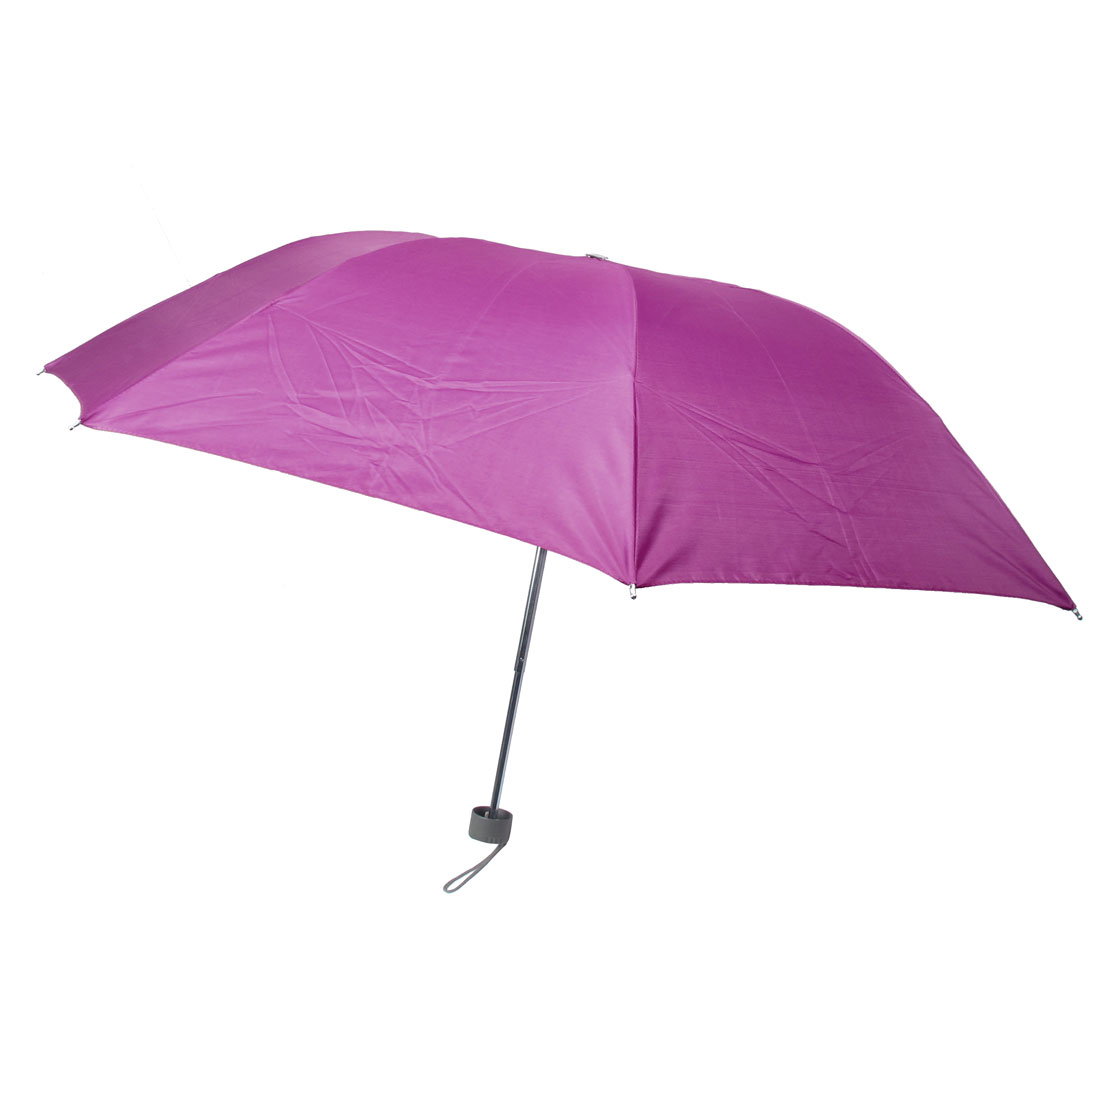 Plastic Handle 3 Sections Telescopic Tube Foldable Fuchsia Umbrella